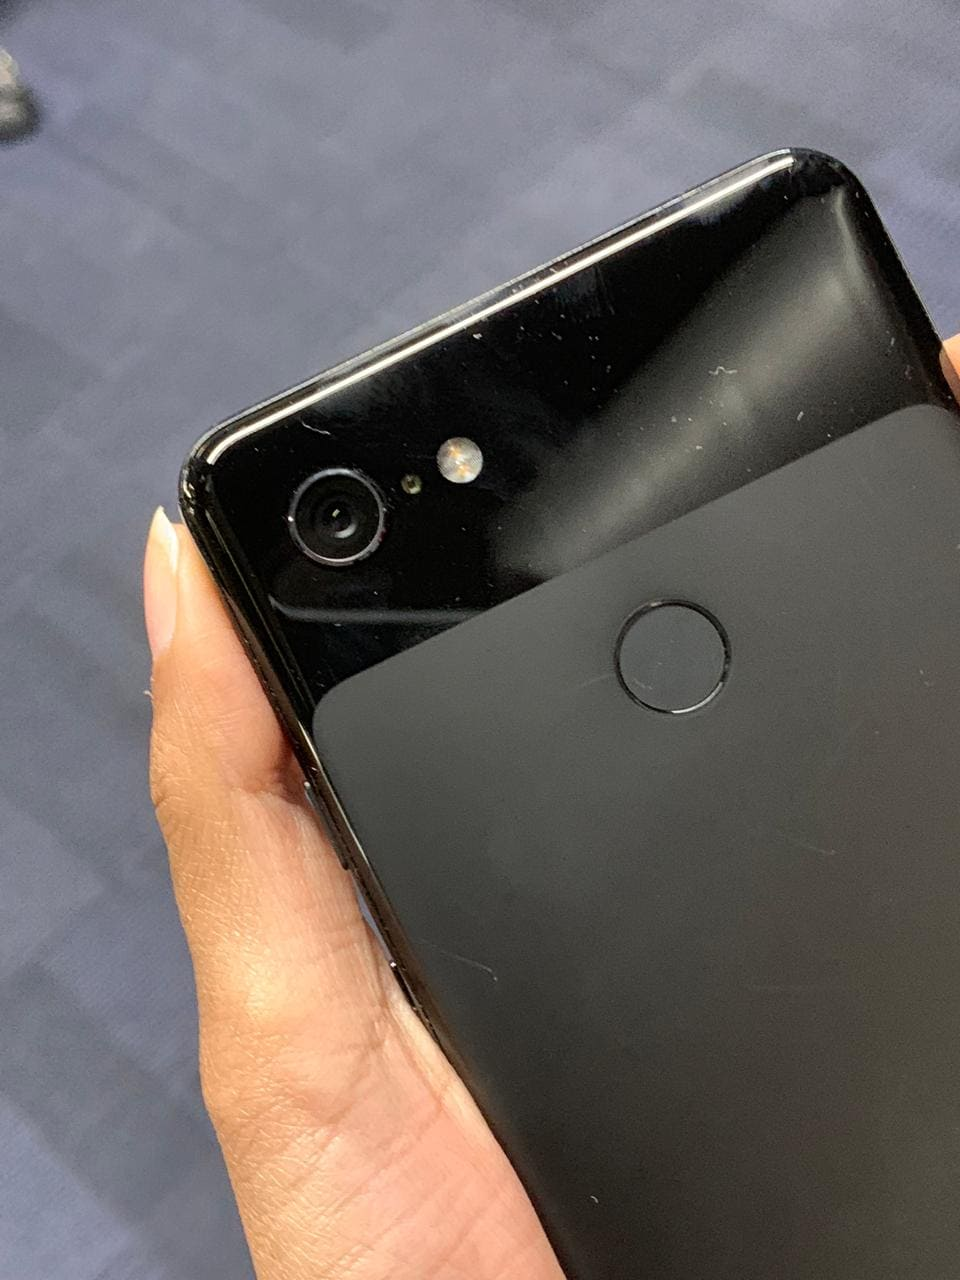 Google Pixel 3 packs a 2915mAh battery while the Pixel 3 XL comes with a 3430mAh battery.